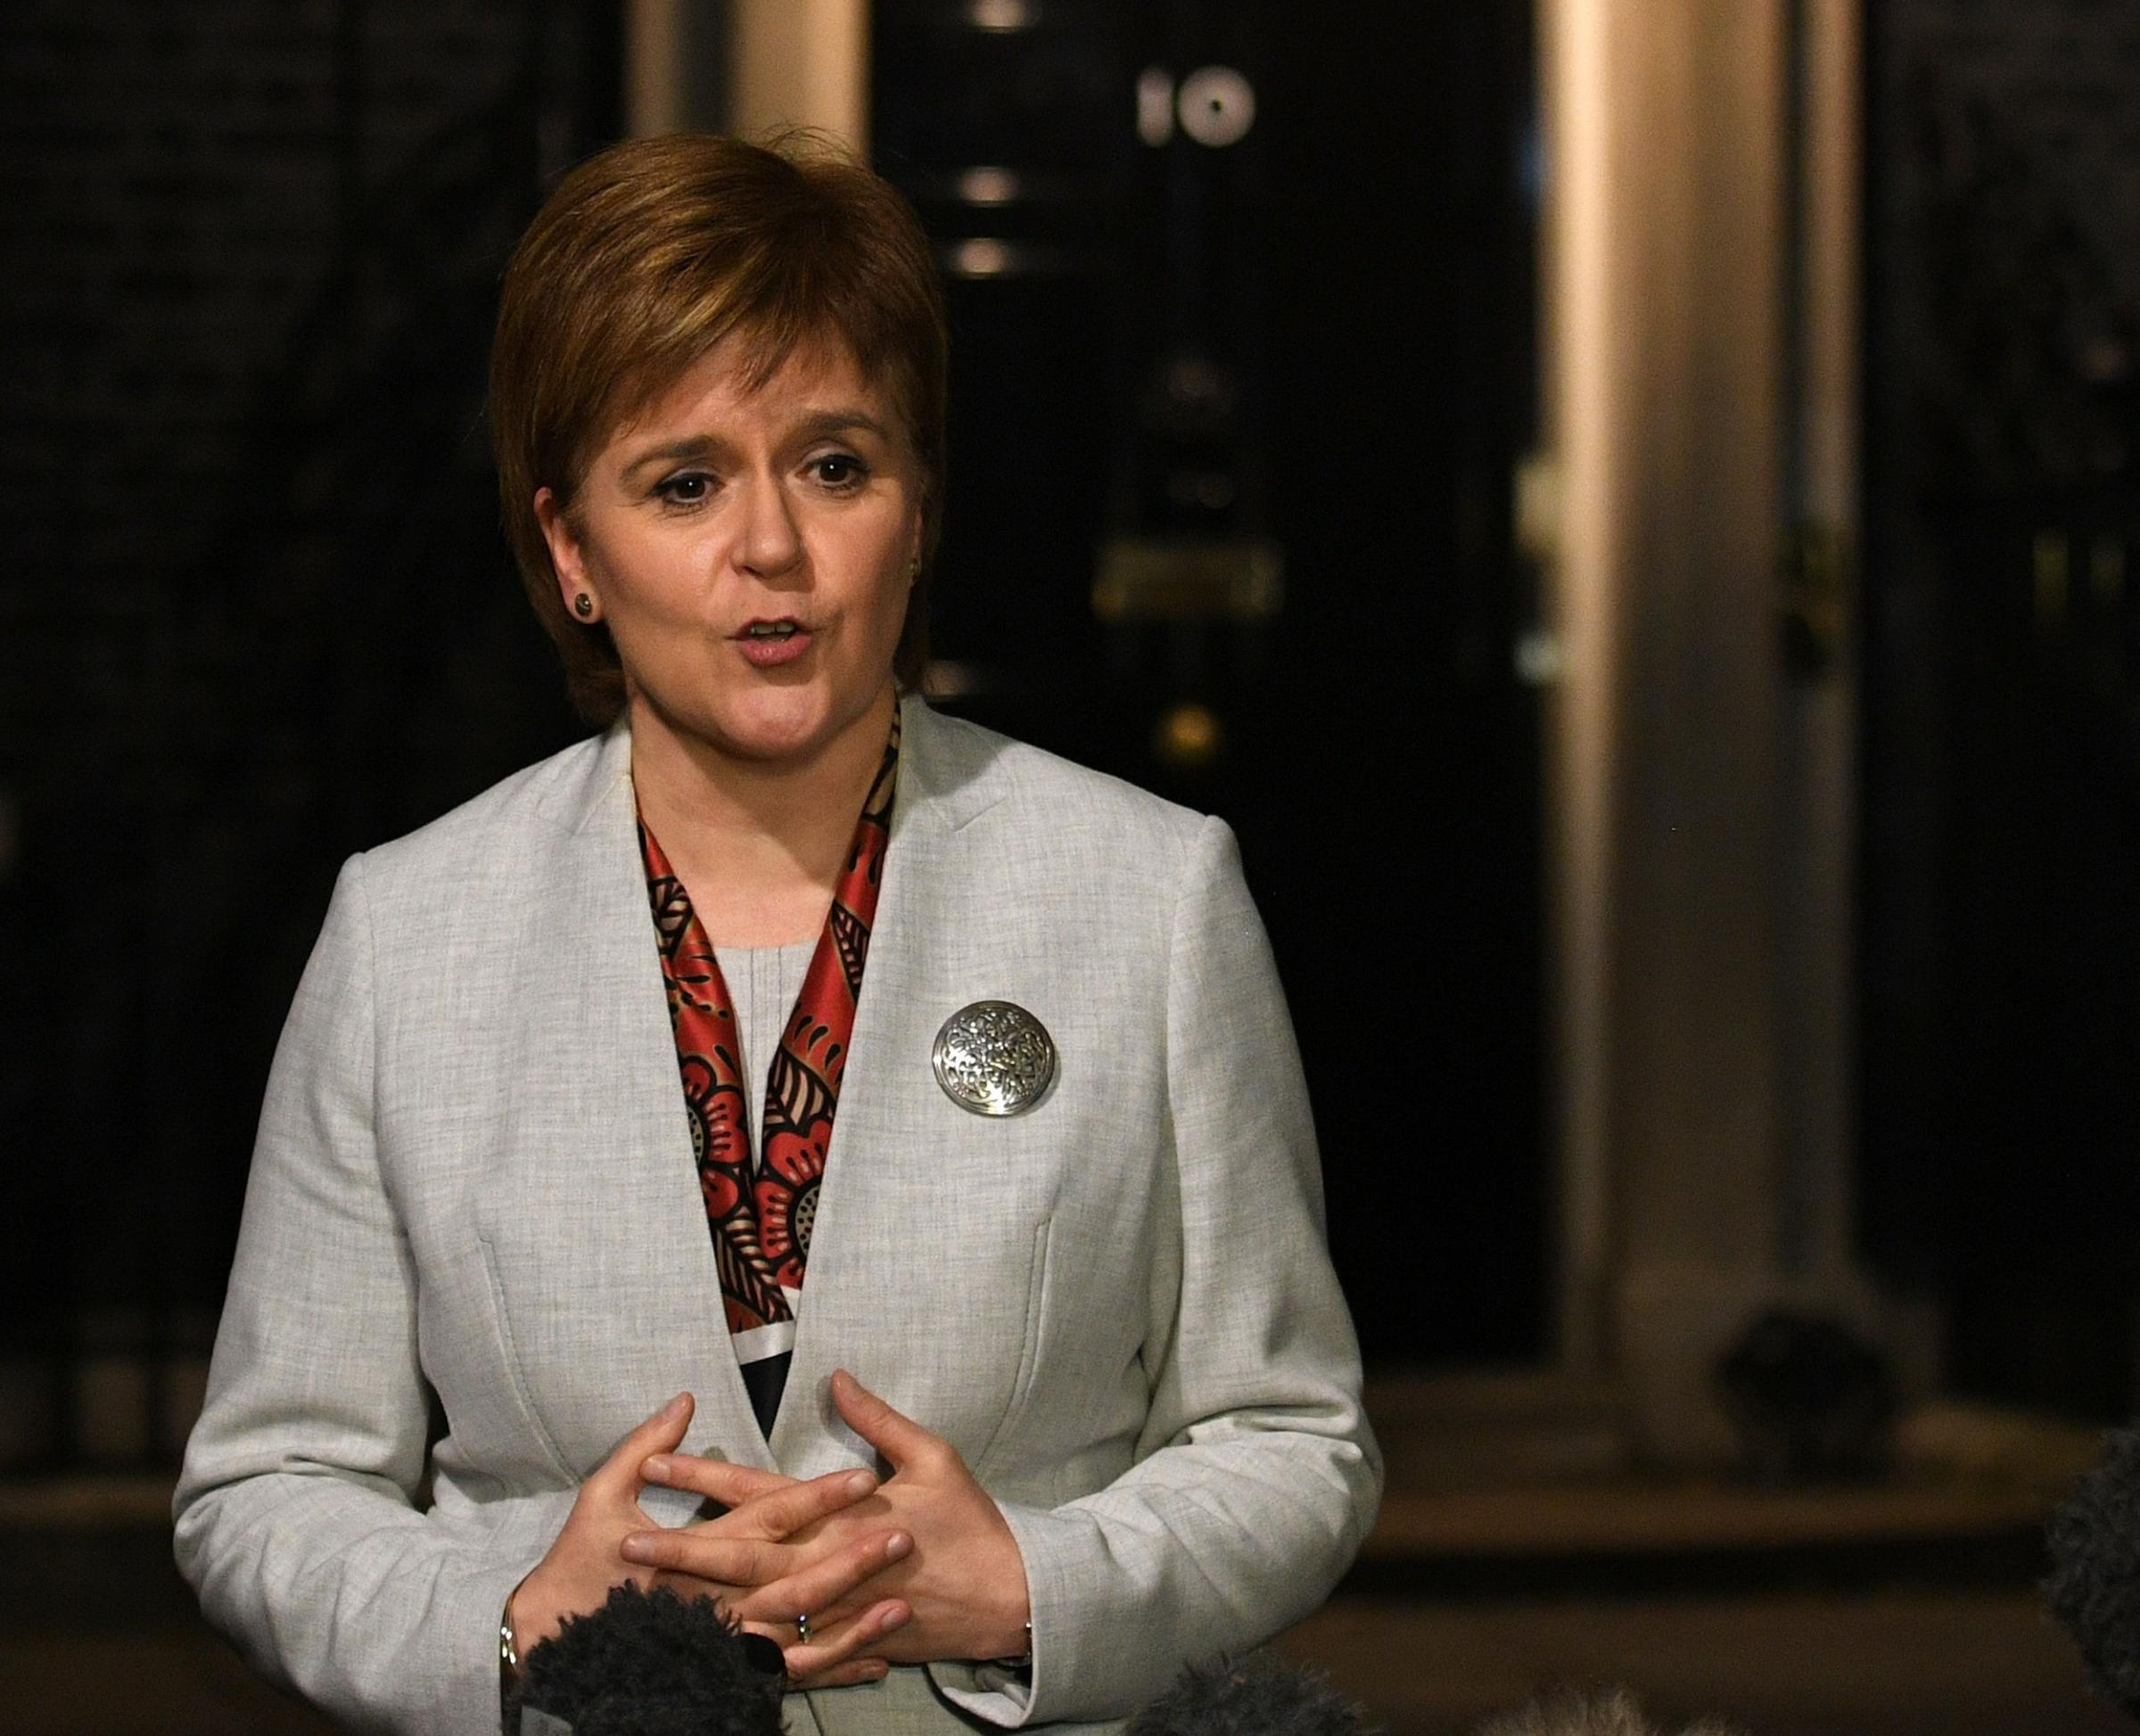 Nicola Sturgeon poised for Downing St showdown with Theresa May as Brexit tensions rise